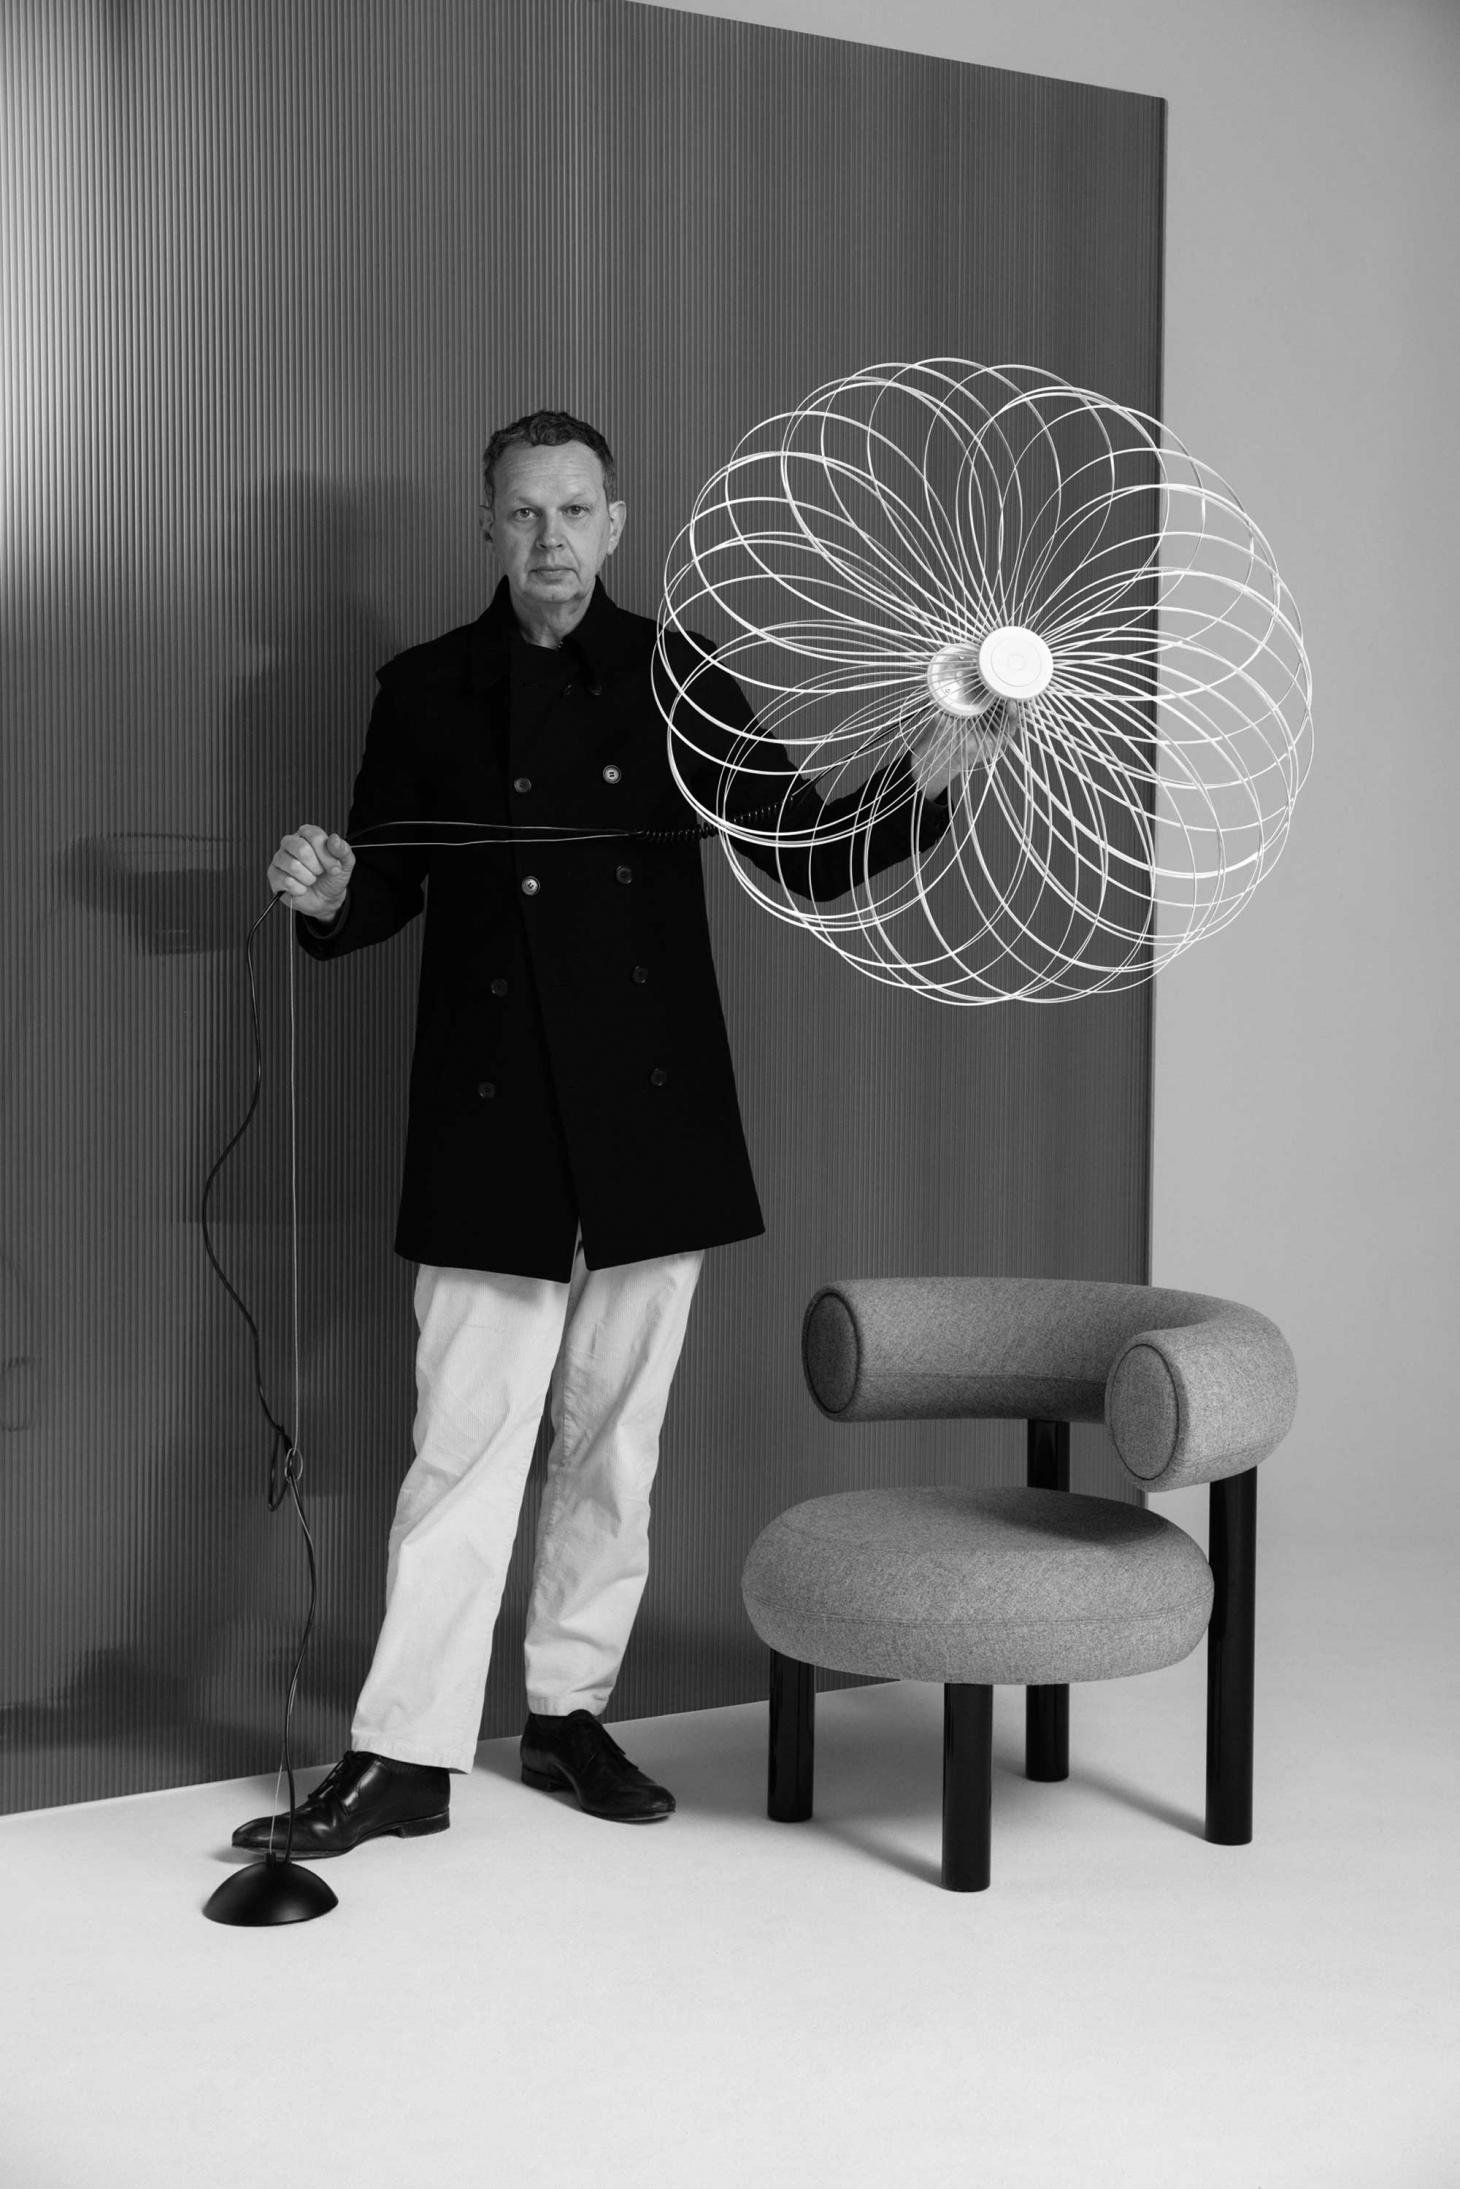 Tom Dixon with Spring light and Fat chair 2019, photography by Peer Lindgreen